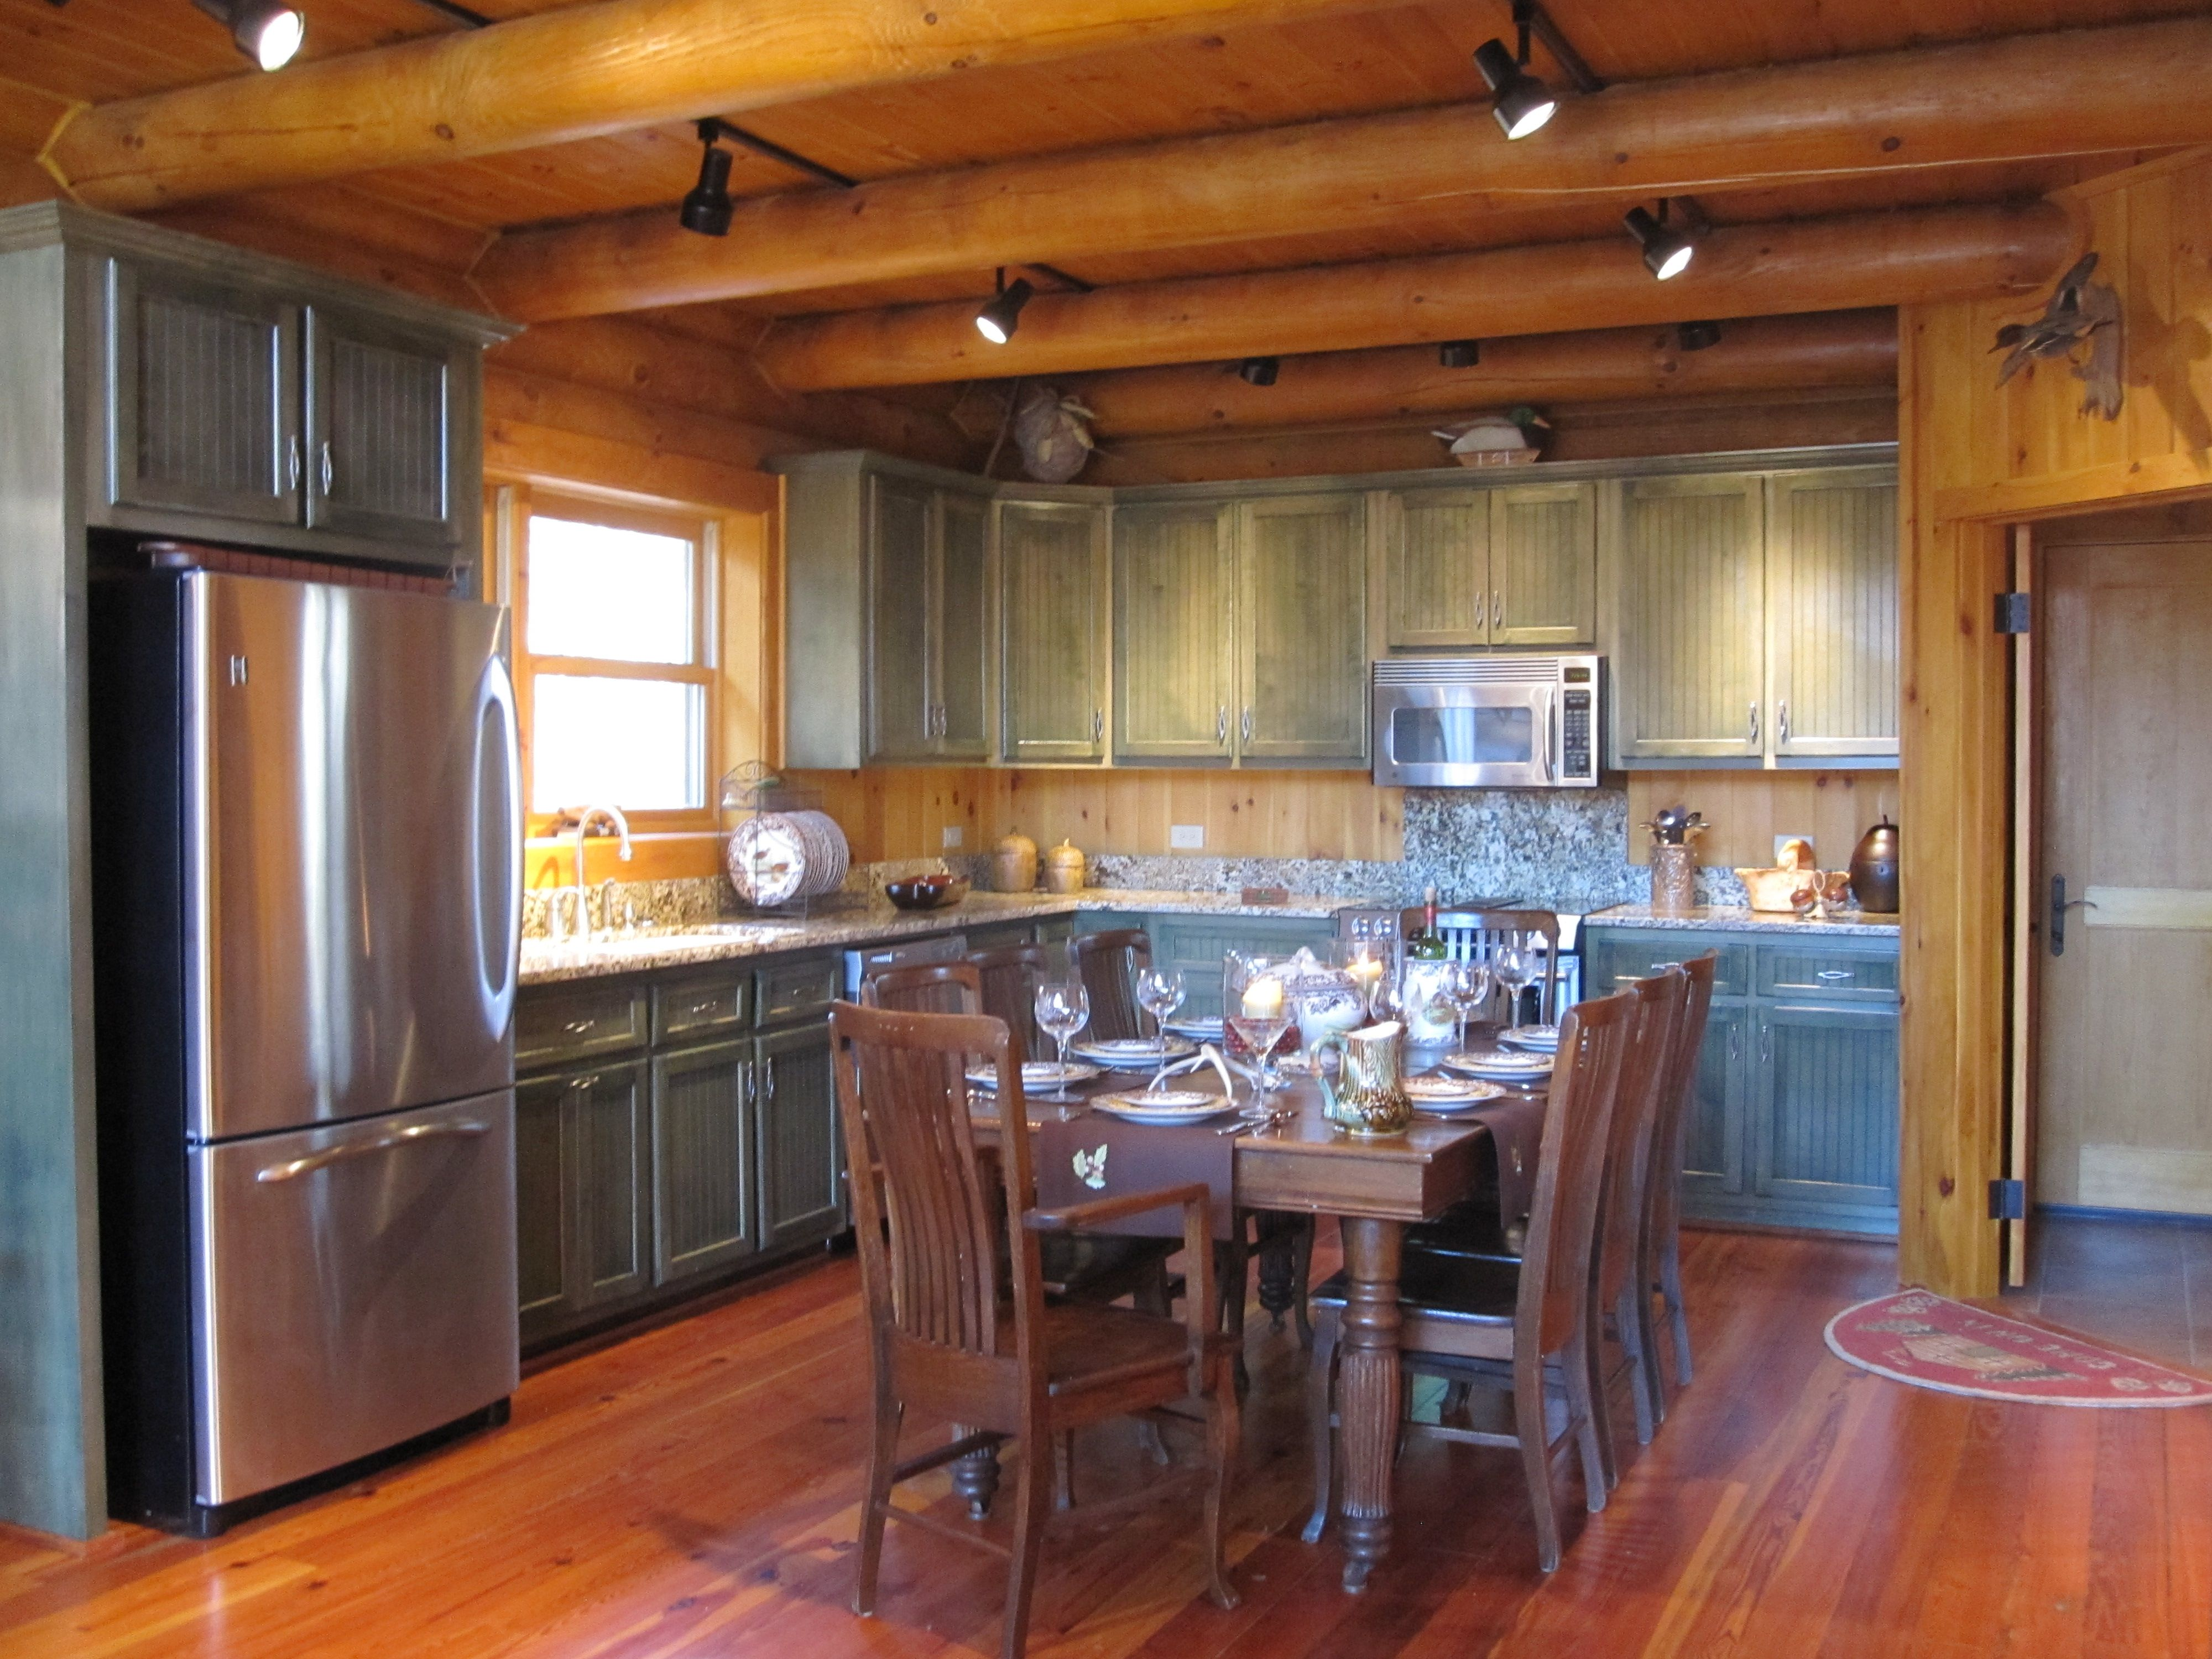 Kitchen cabinet ideas for log homes - Bellissimoandbella Blogspot Com Log Cabin Kitchen Green Cabinets